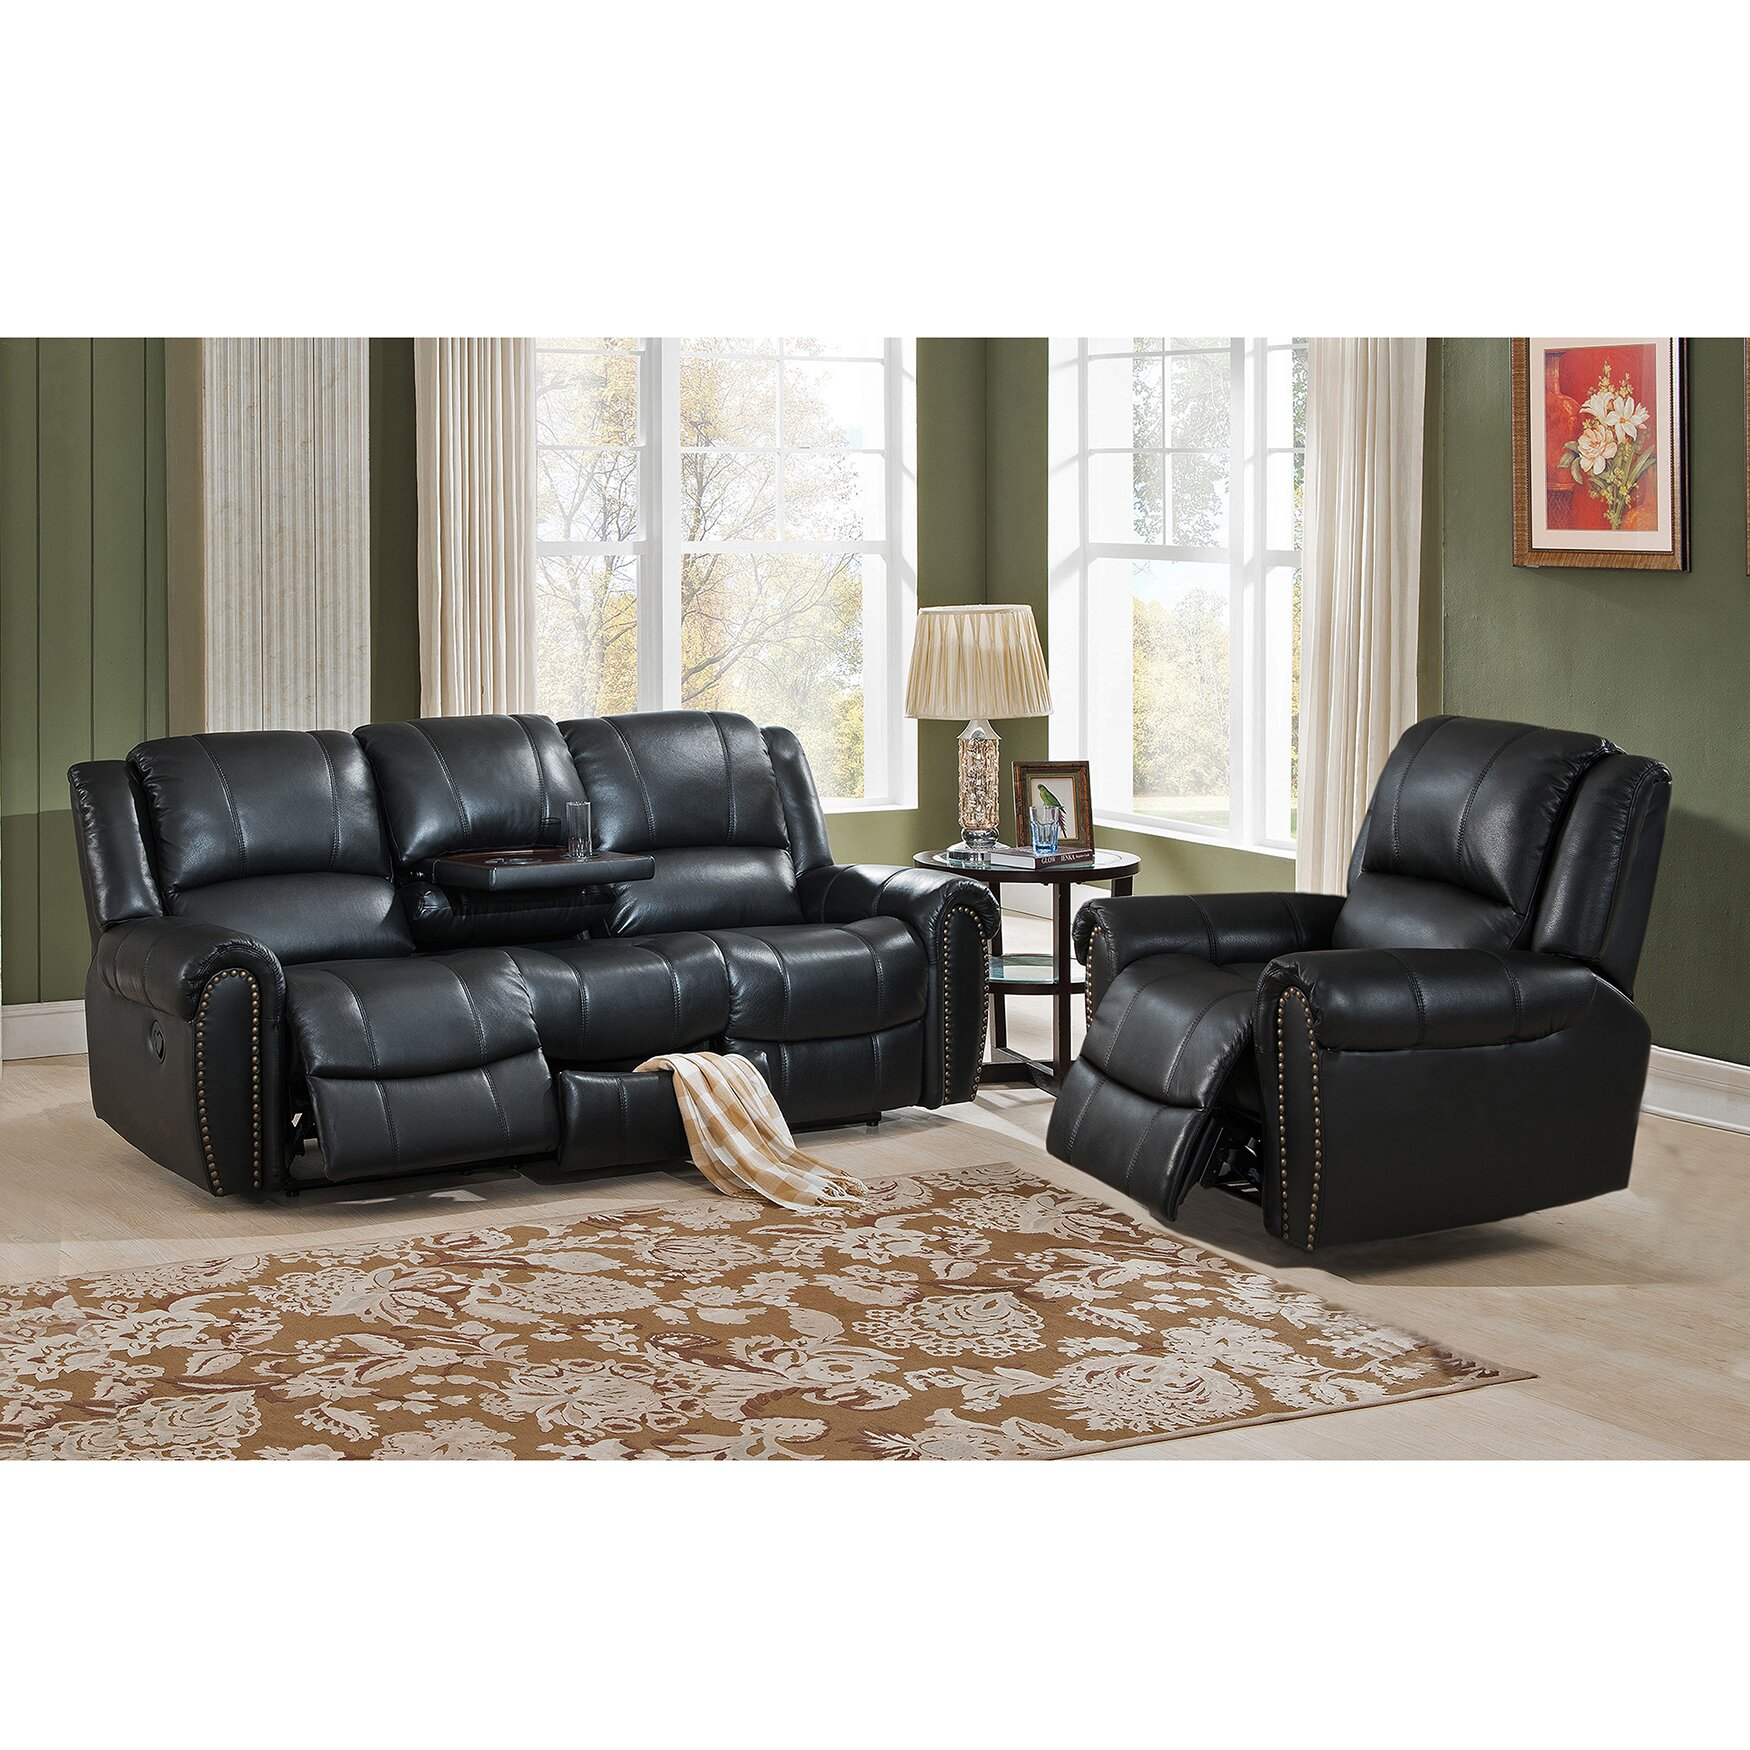 Amax houston 2 piece leather living room set 2 piece leather living room set